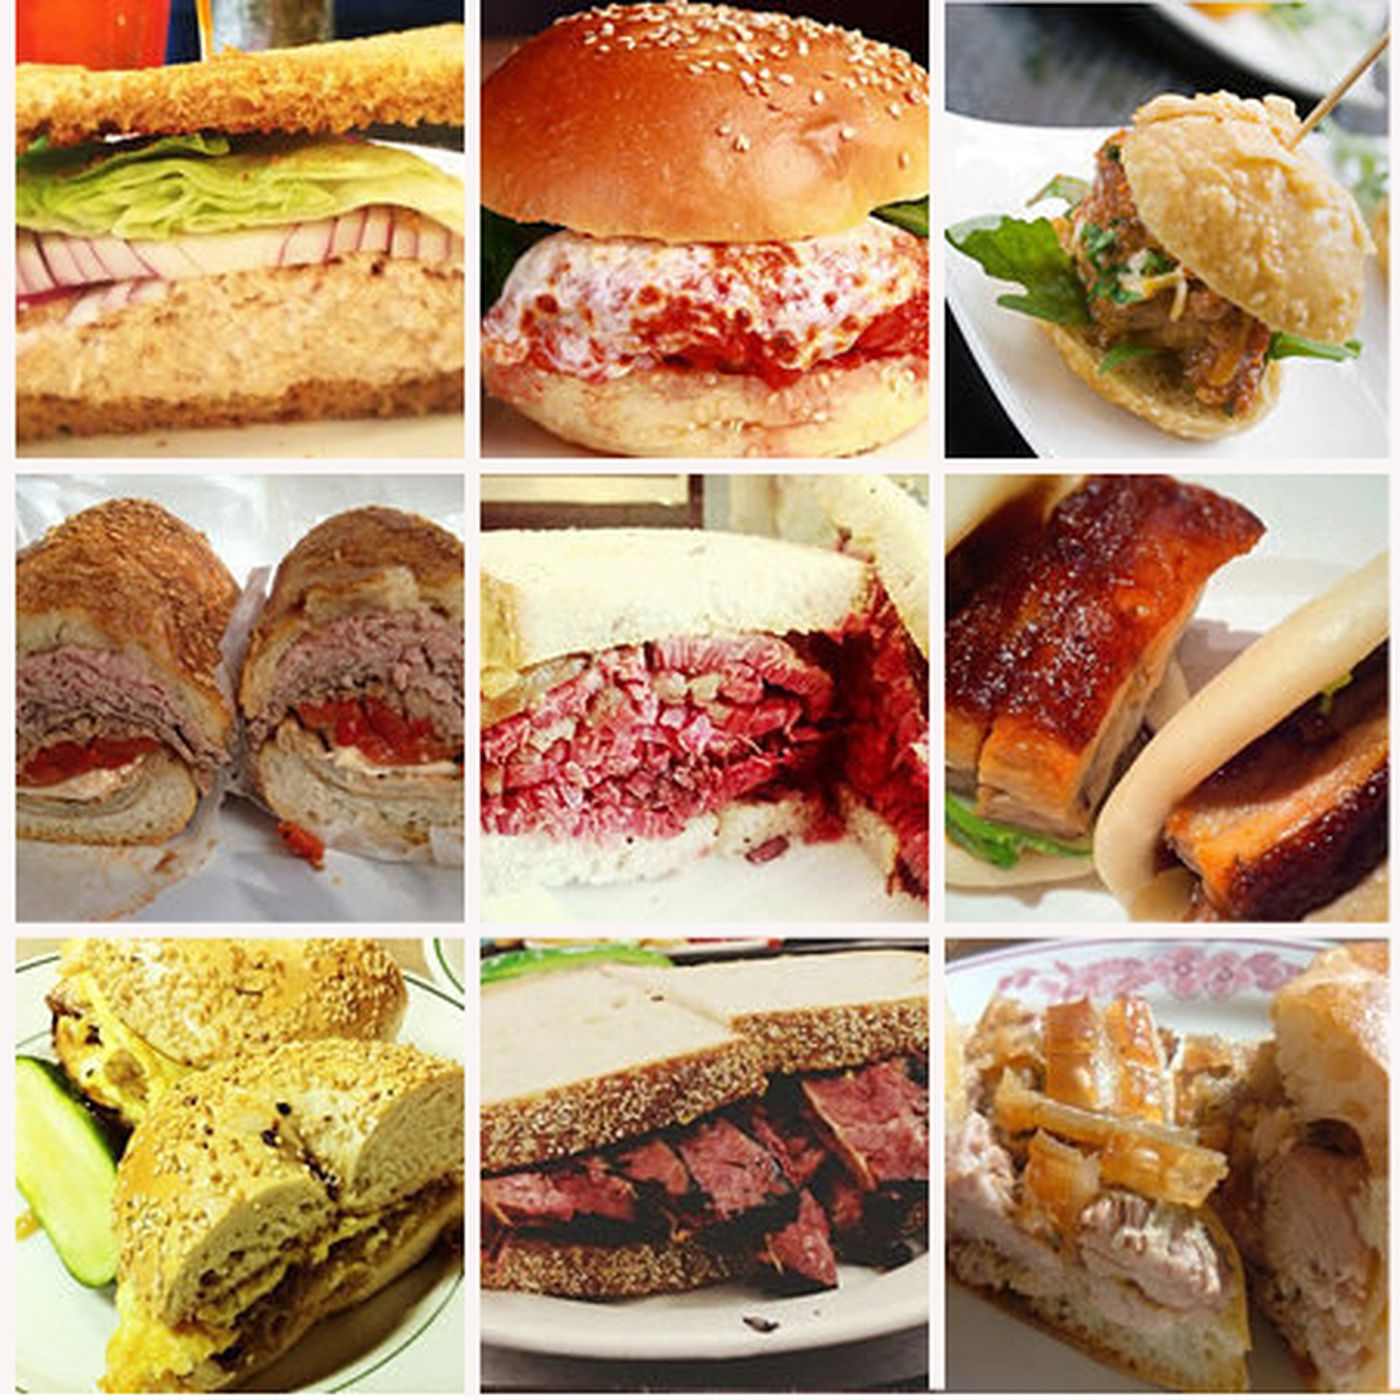 New York City S 15 Most Iconic Sandwiches Eater Ny